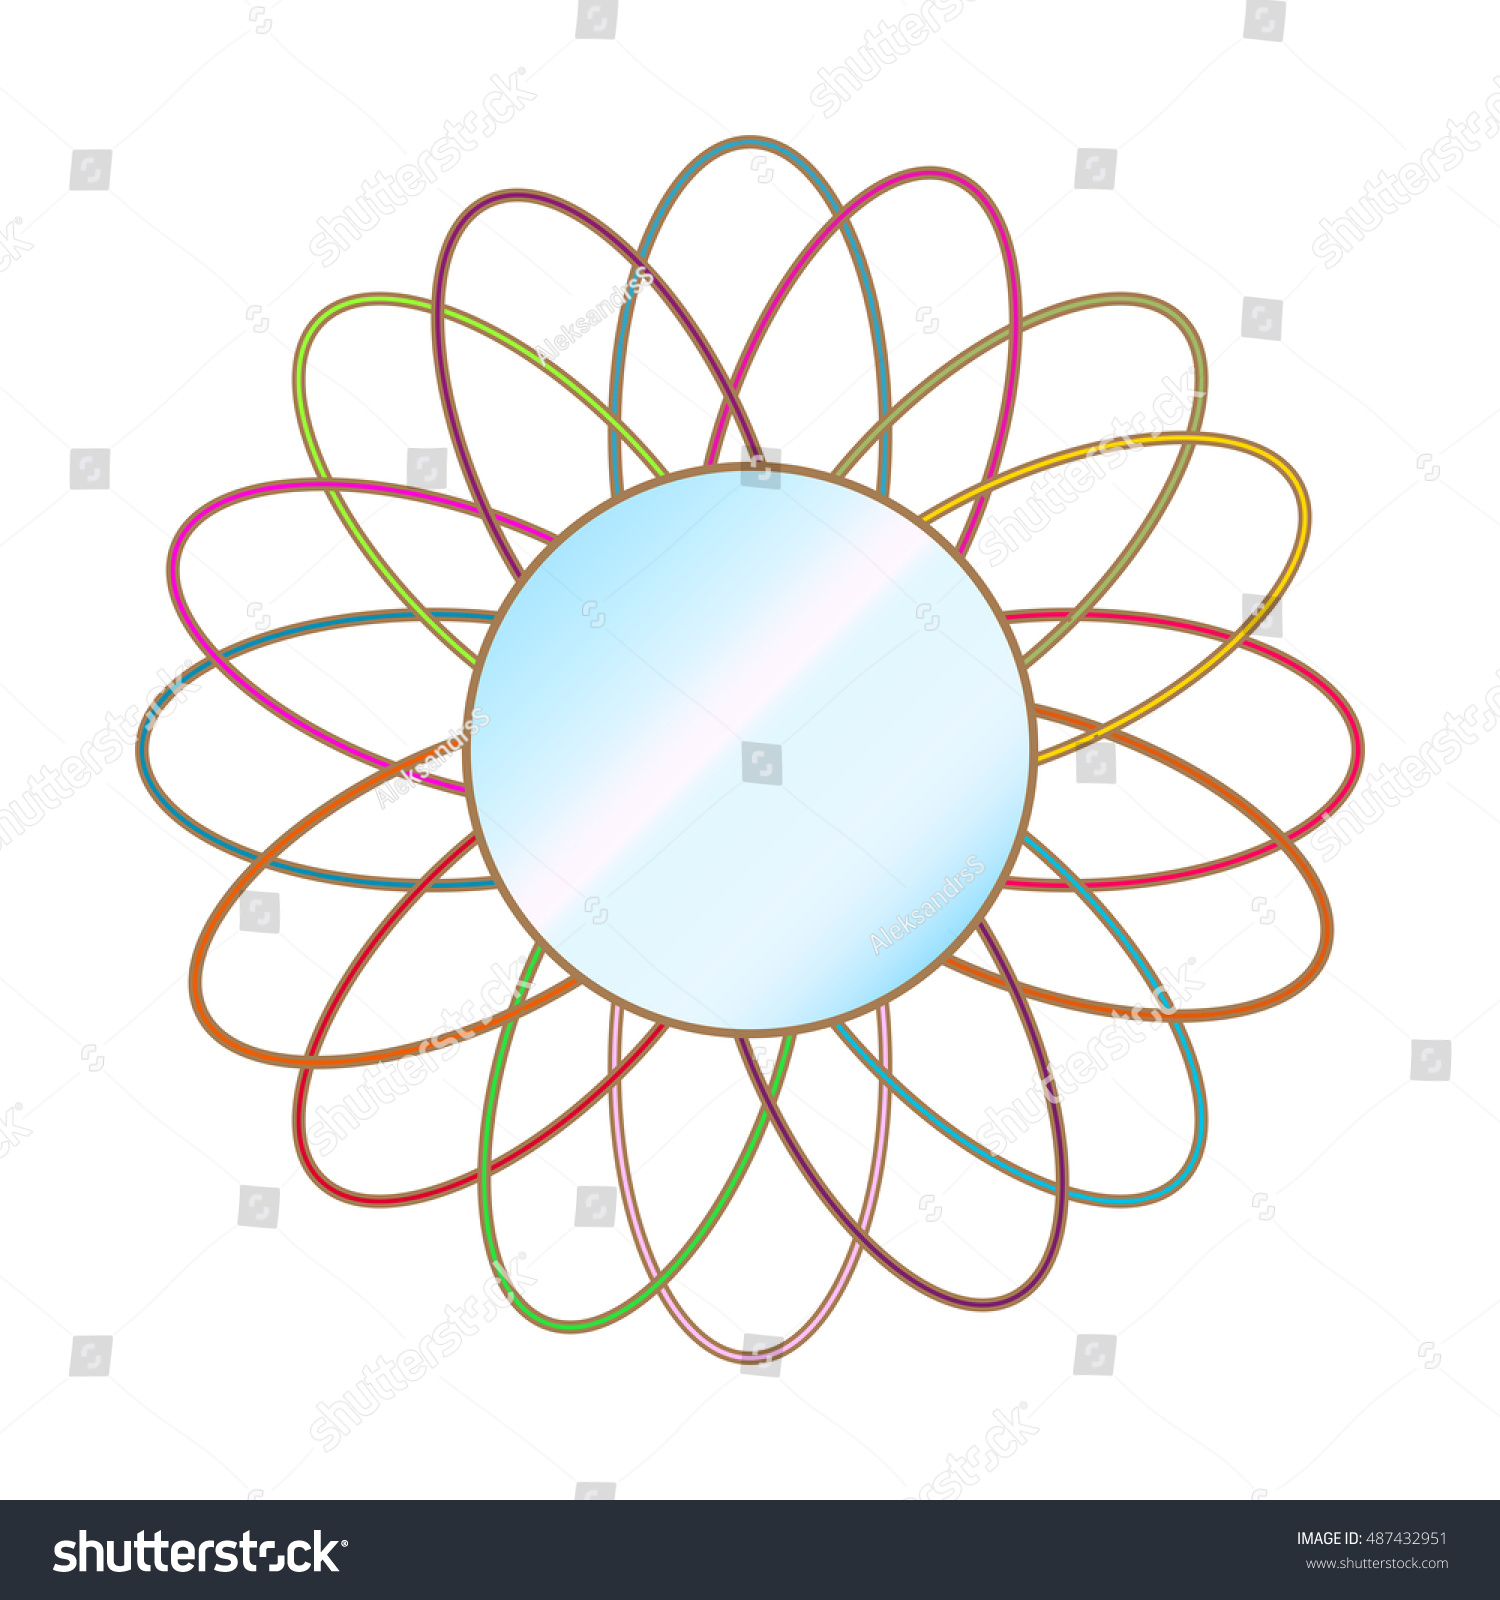 Vector illustration wall circle mirror on stock vector 487432951 vector illustration of a wall circle mirror on a white background witch colorful fram amipublicfo Gallery